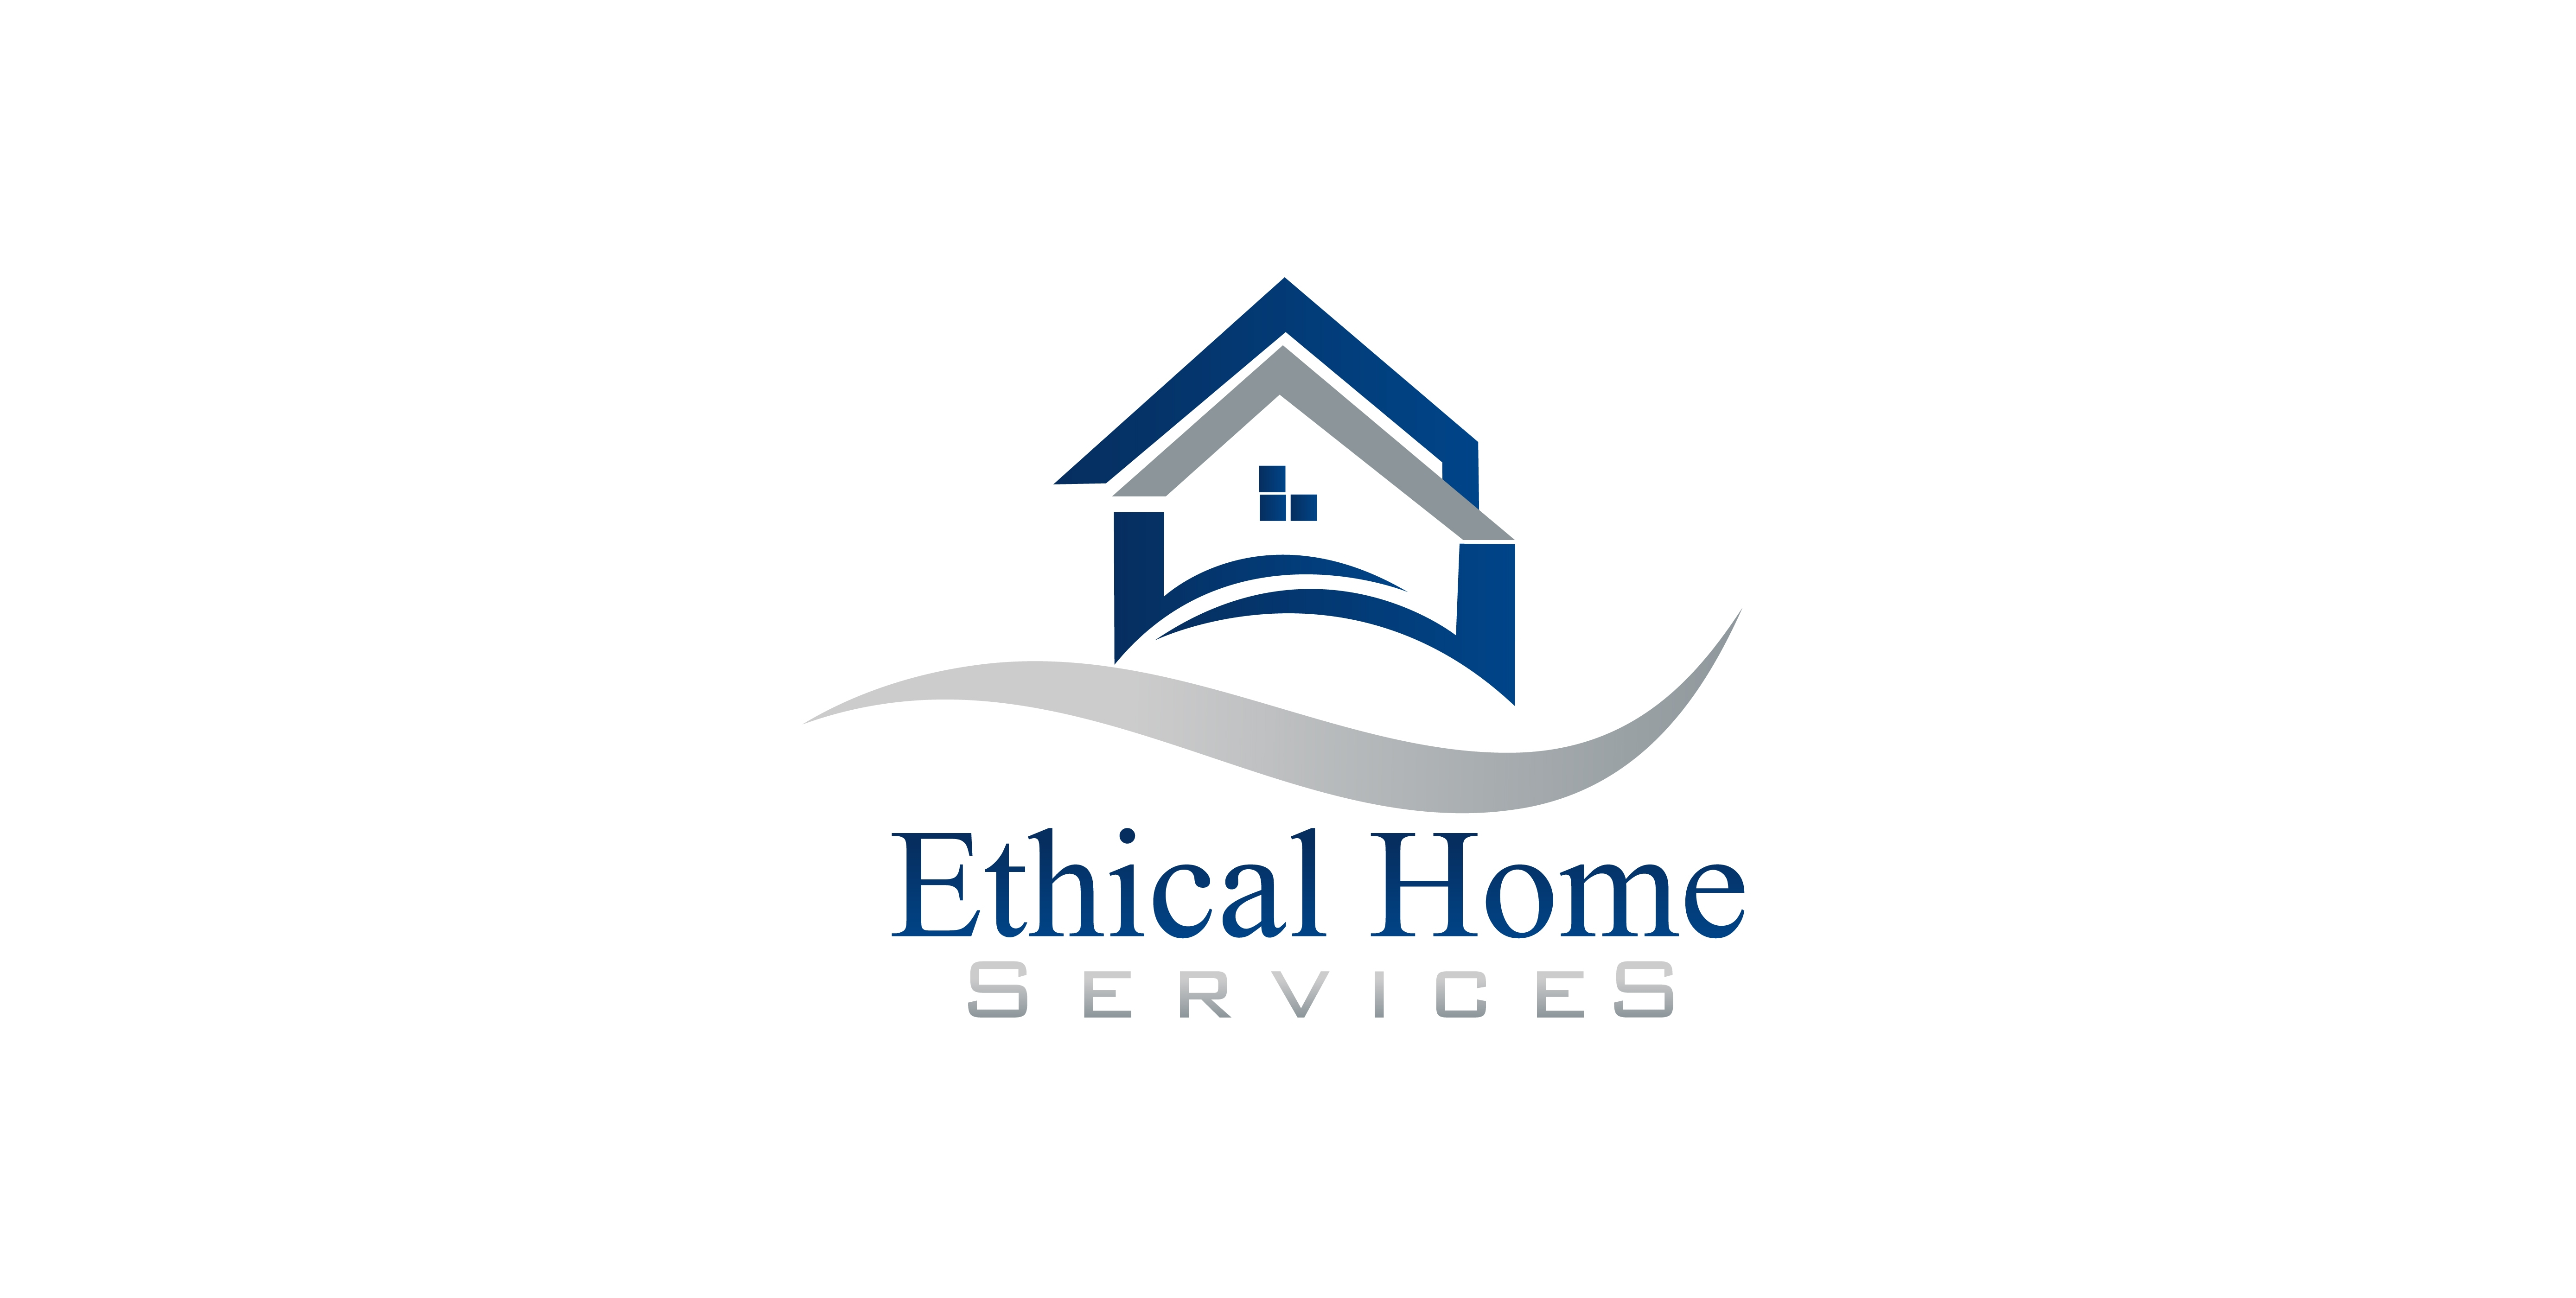 Ethical Home Services